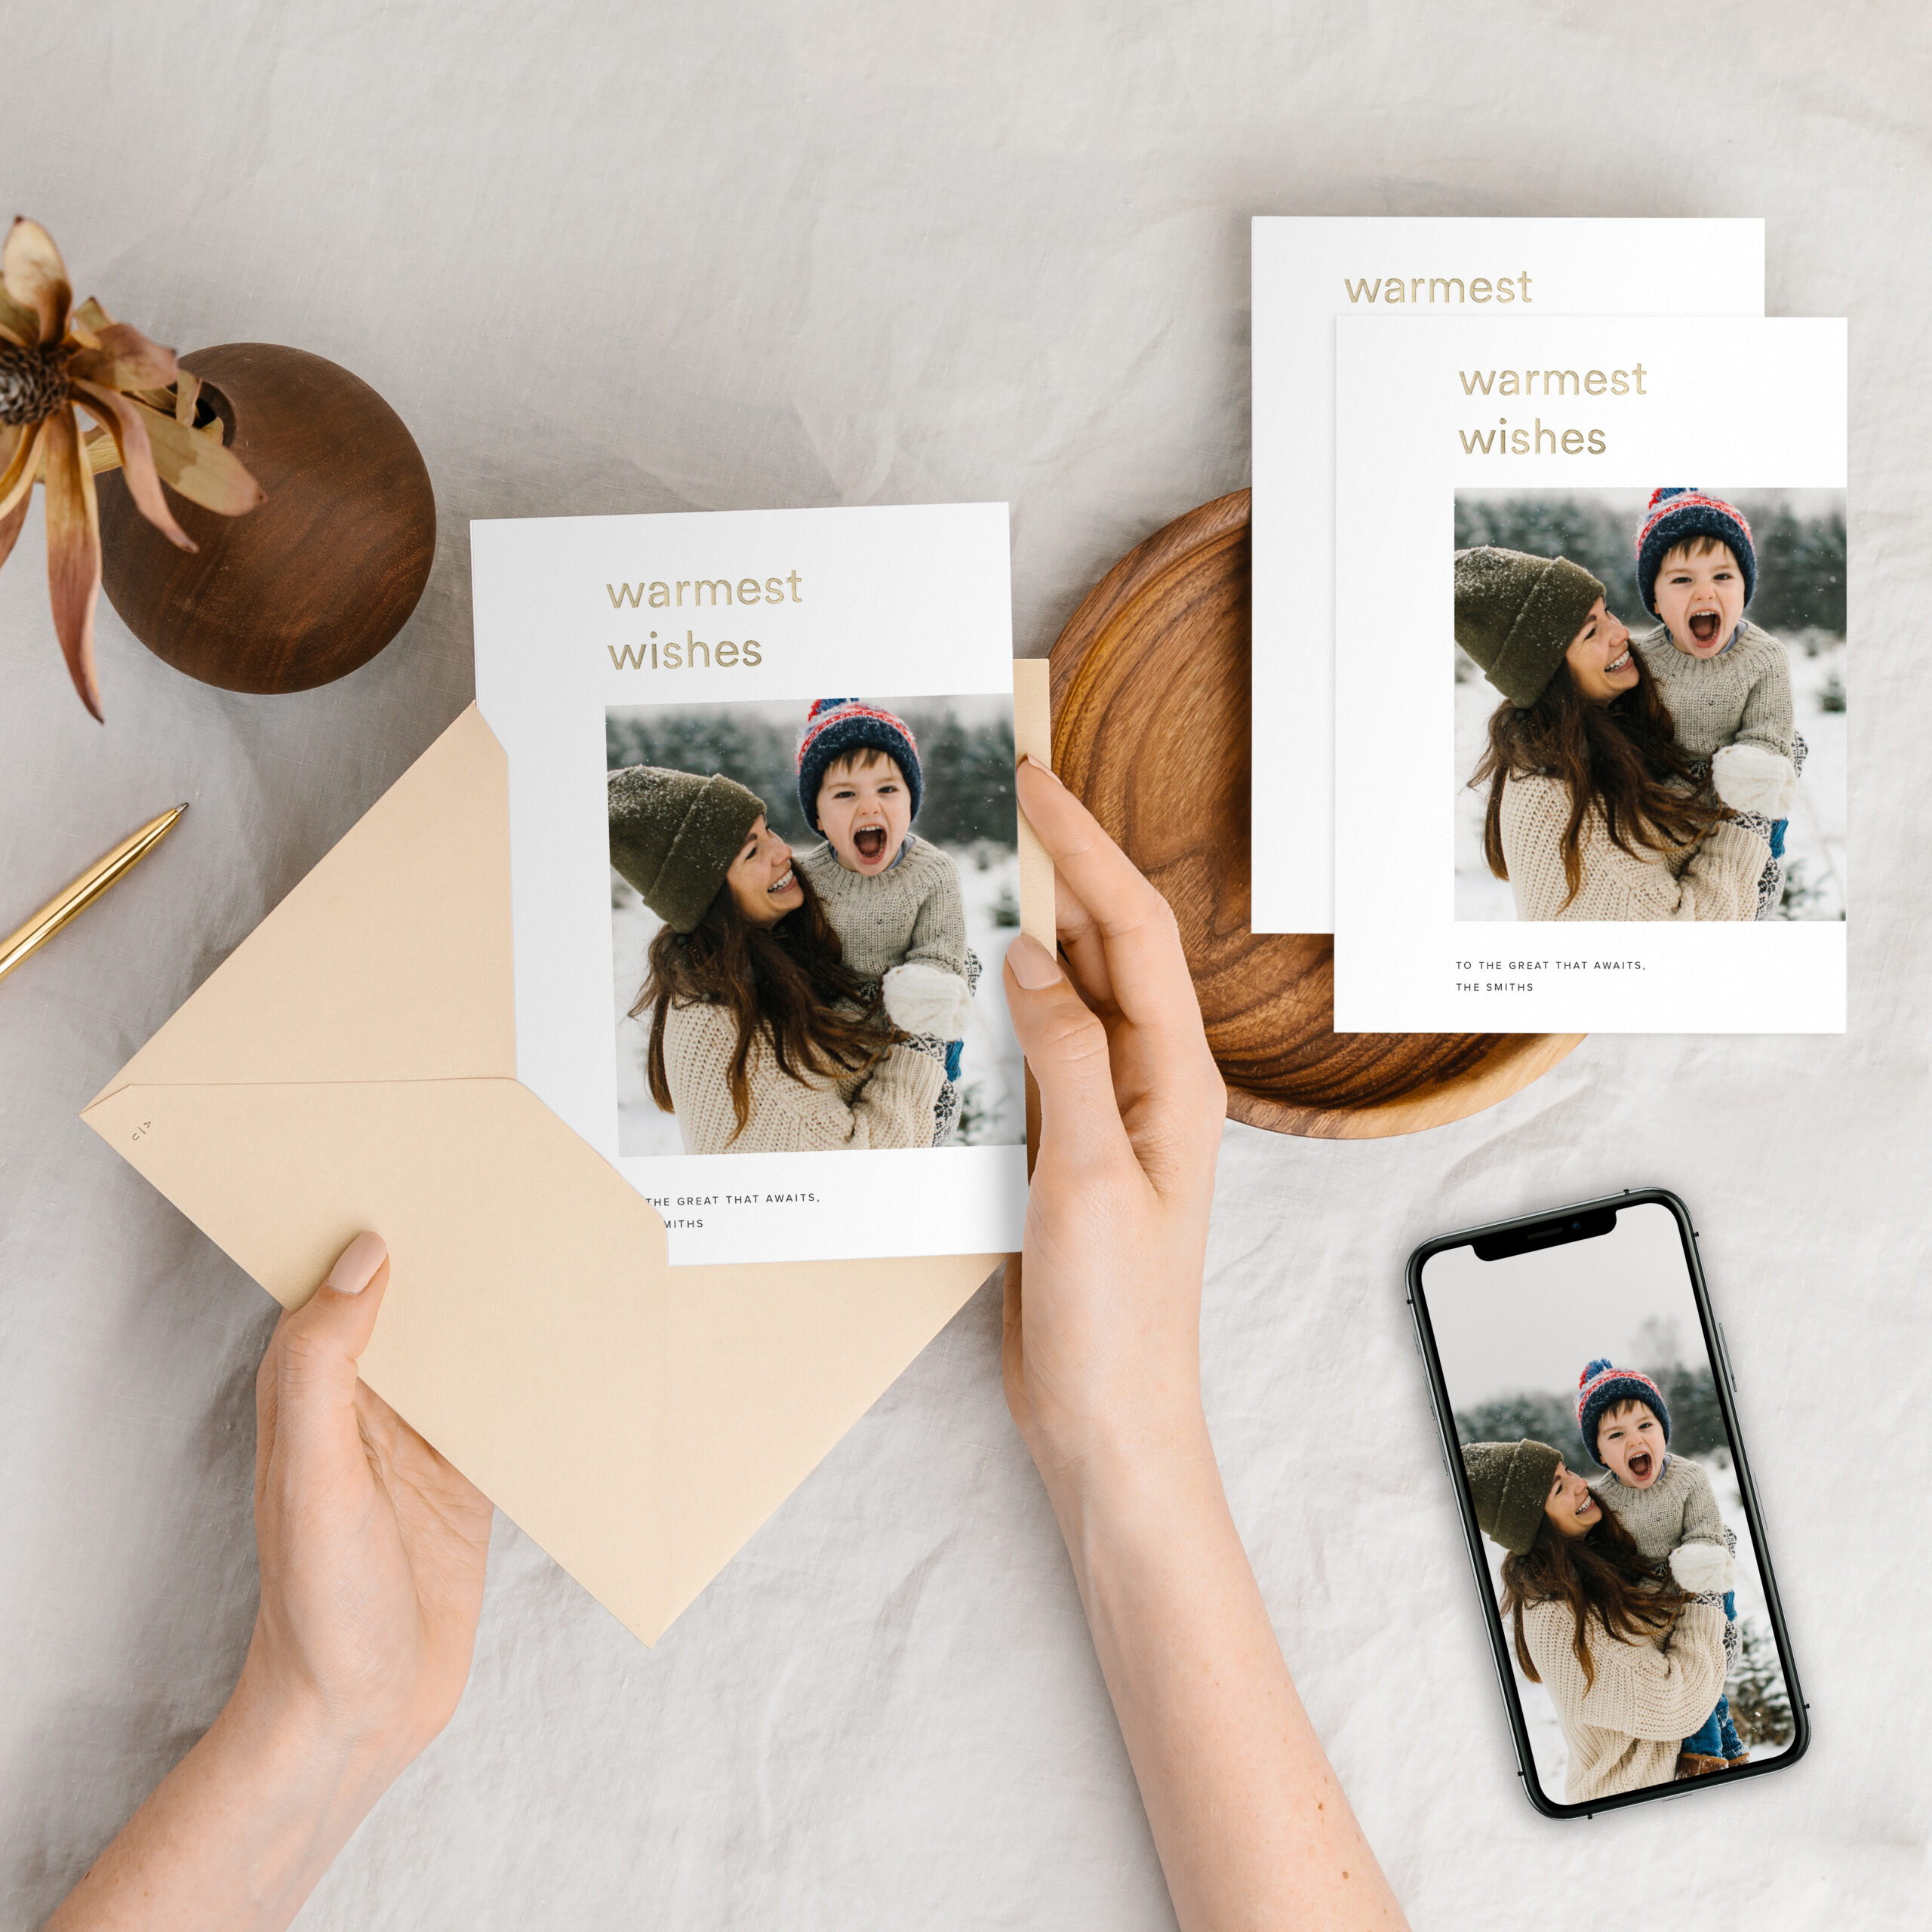 20191002-holiday-cards-hand-placing-in-gold-envelope-phone-photo-top-down-on-linen